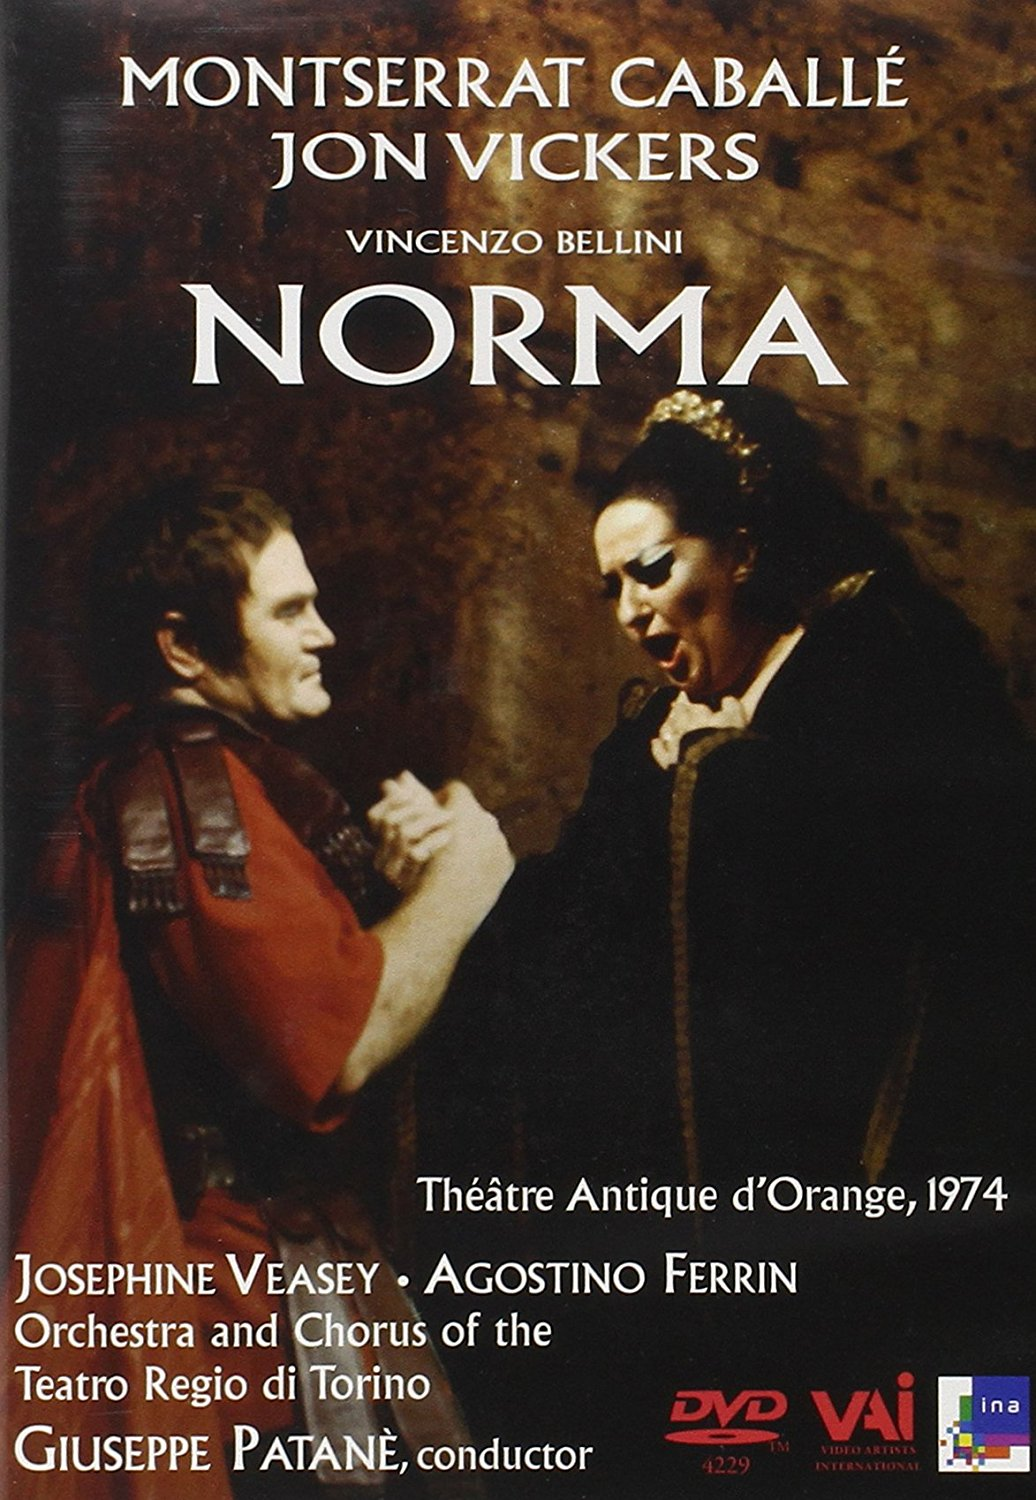 Norma Caballe Vickers